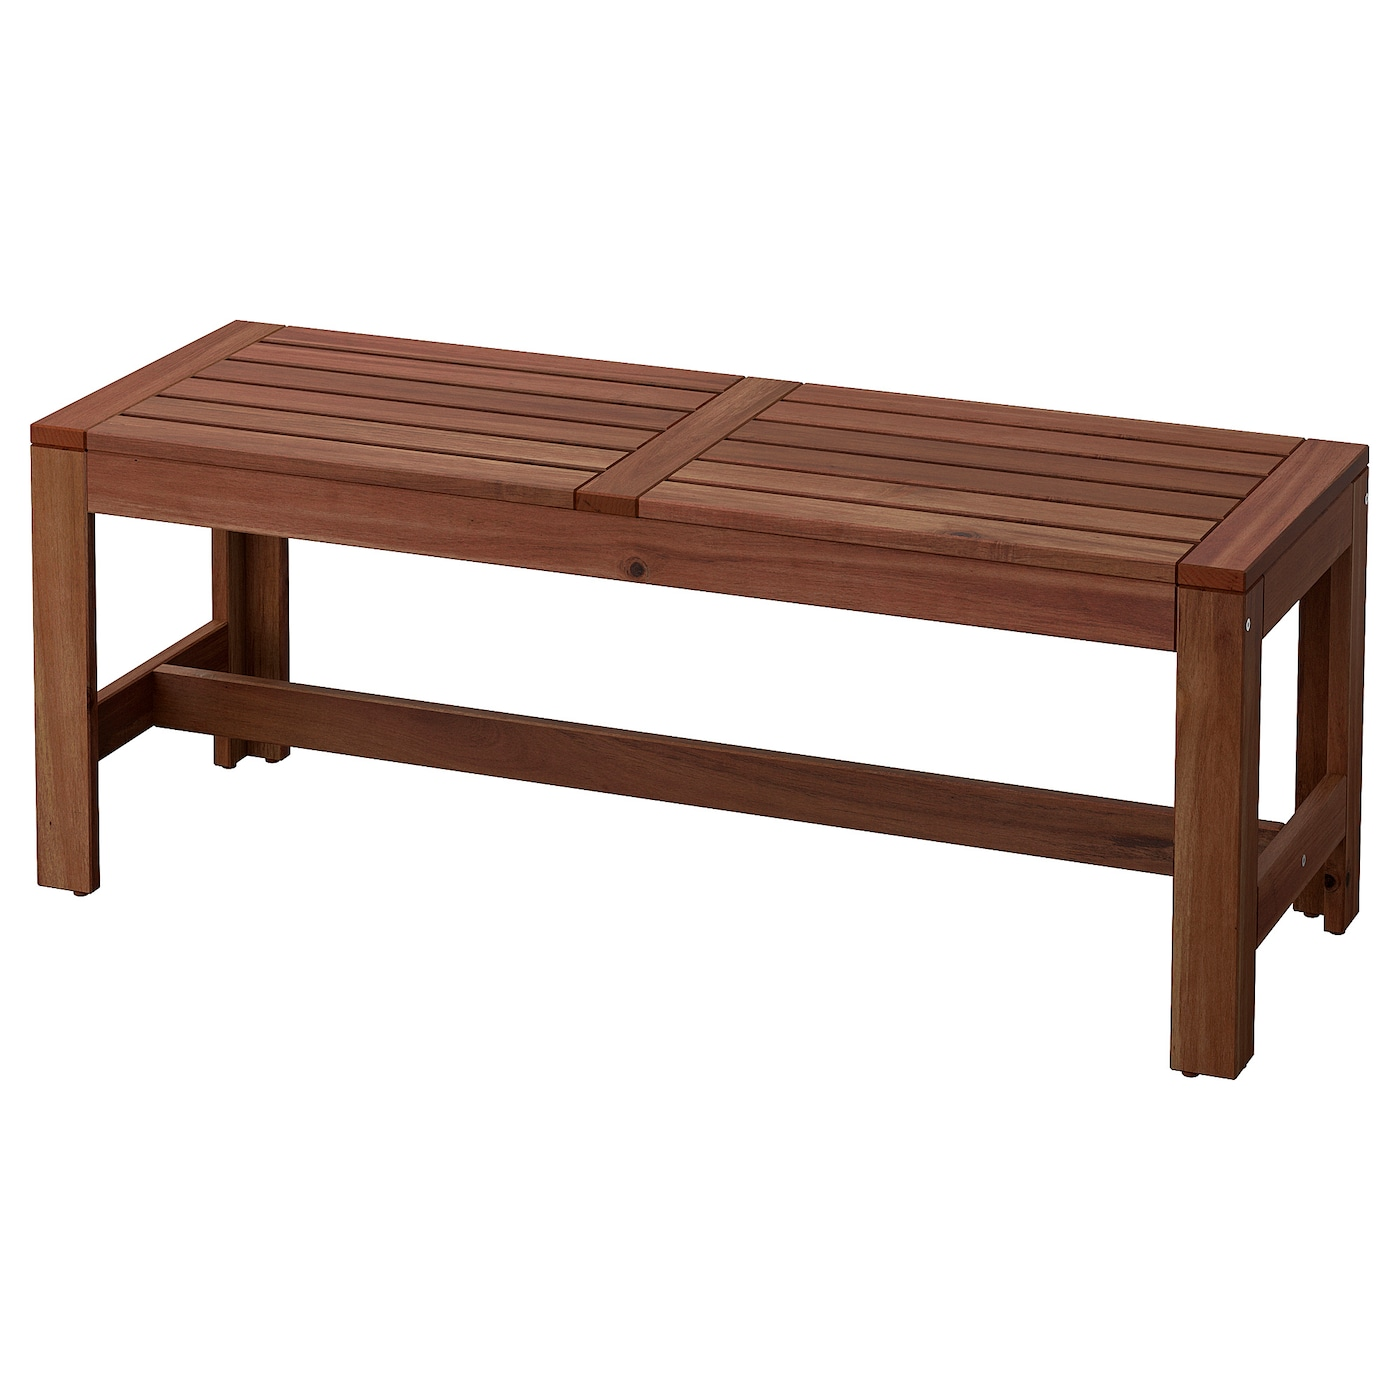 ÄpplarÖ Bench Outdoor Brown Stained